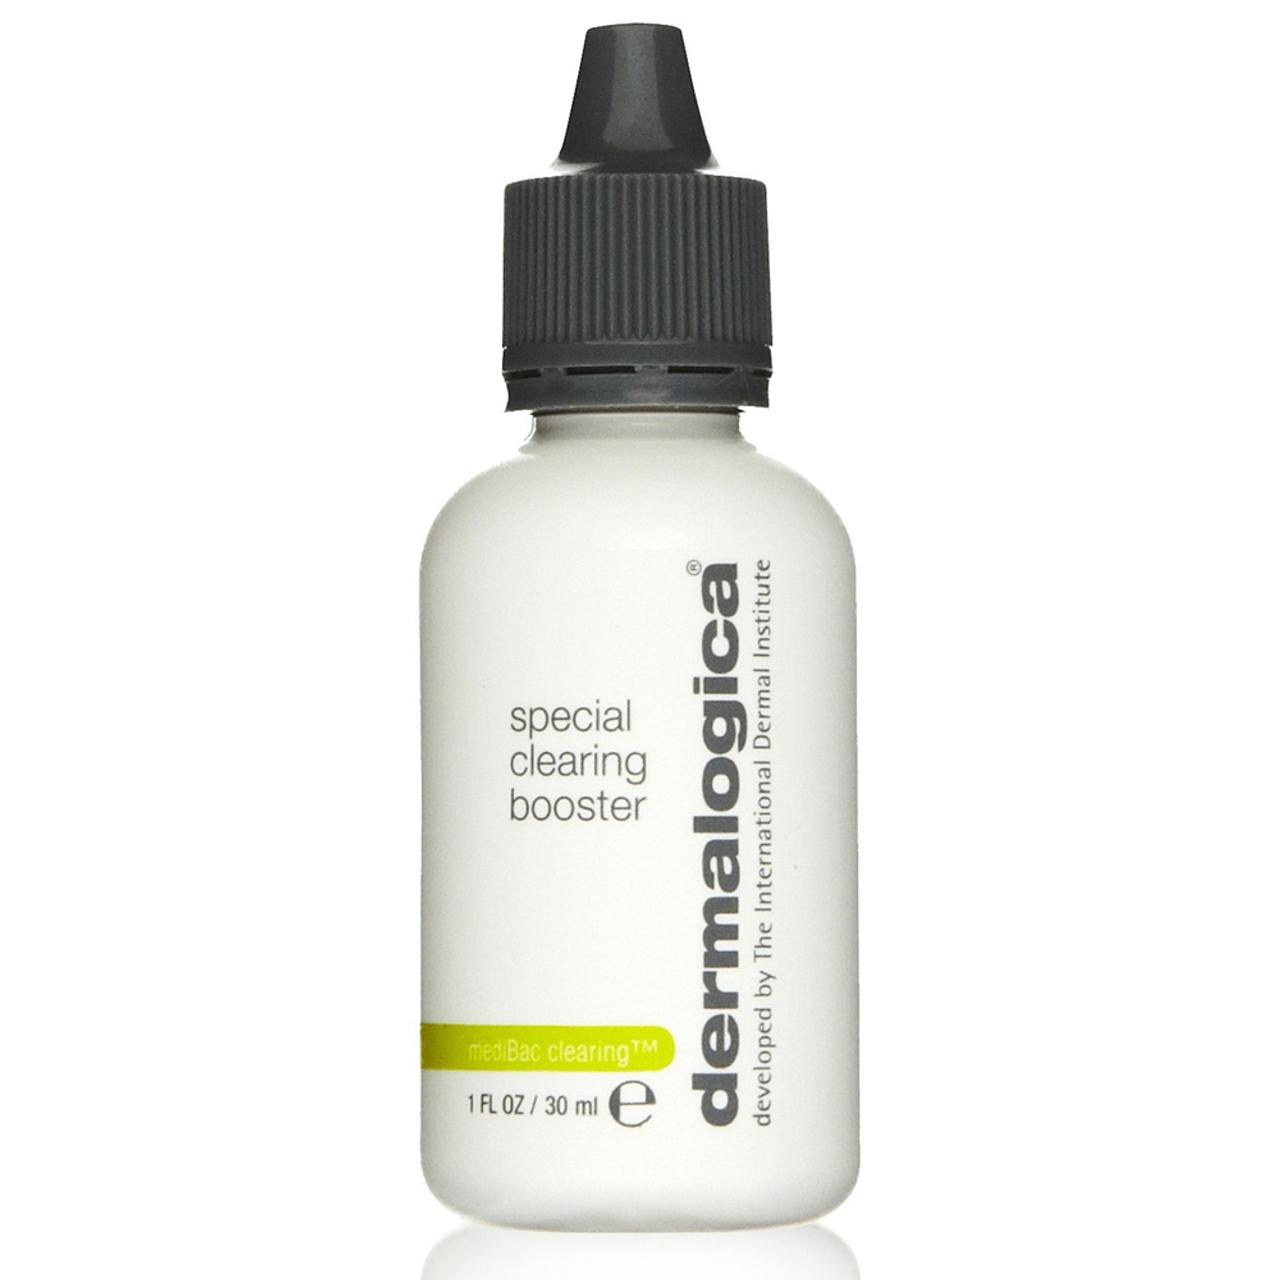 Dermalogica mediBac Special Clearing Booster